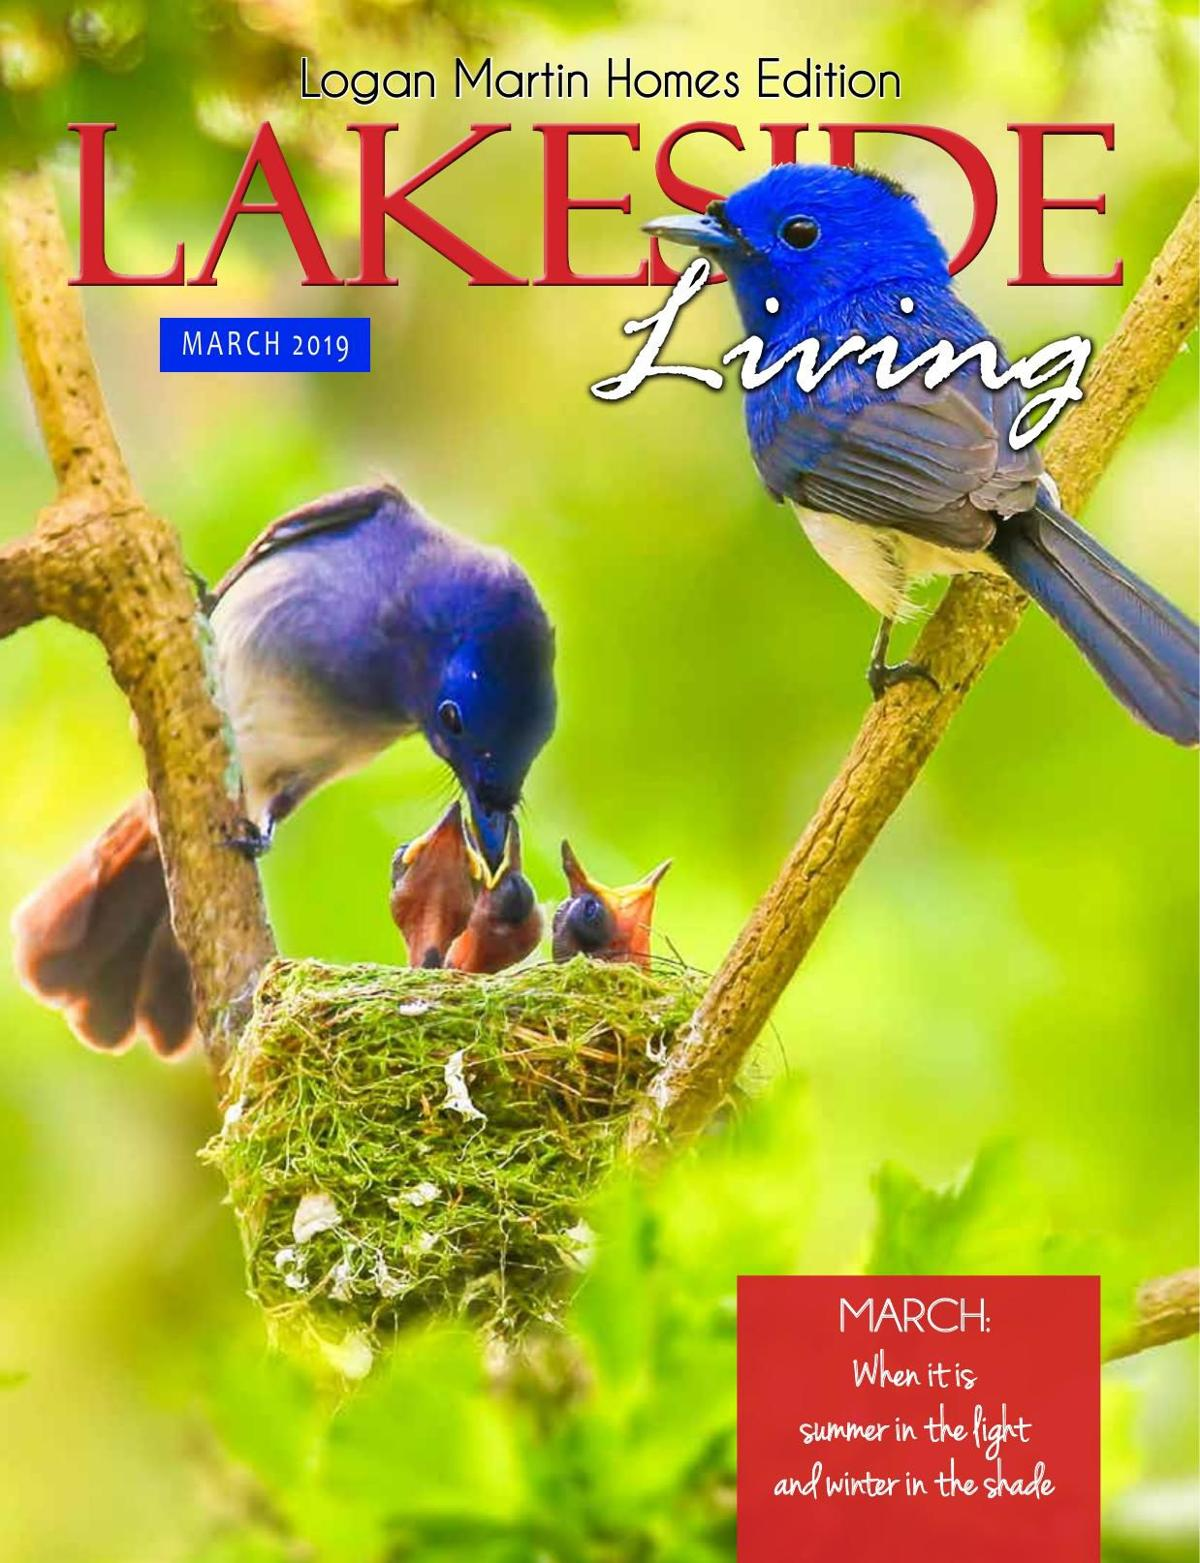 Lakeside Living March 2019